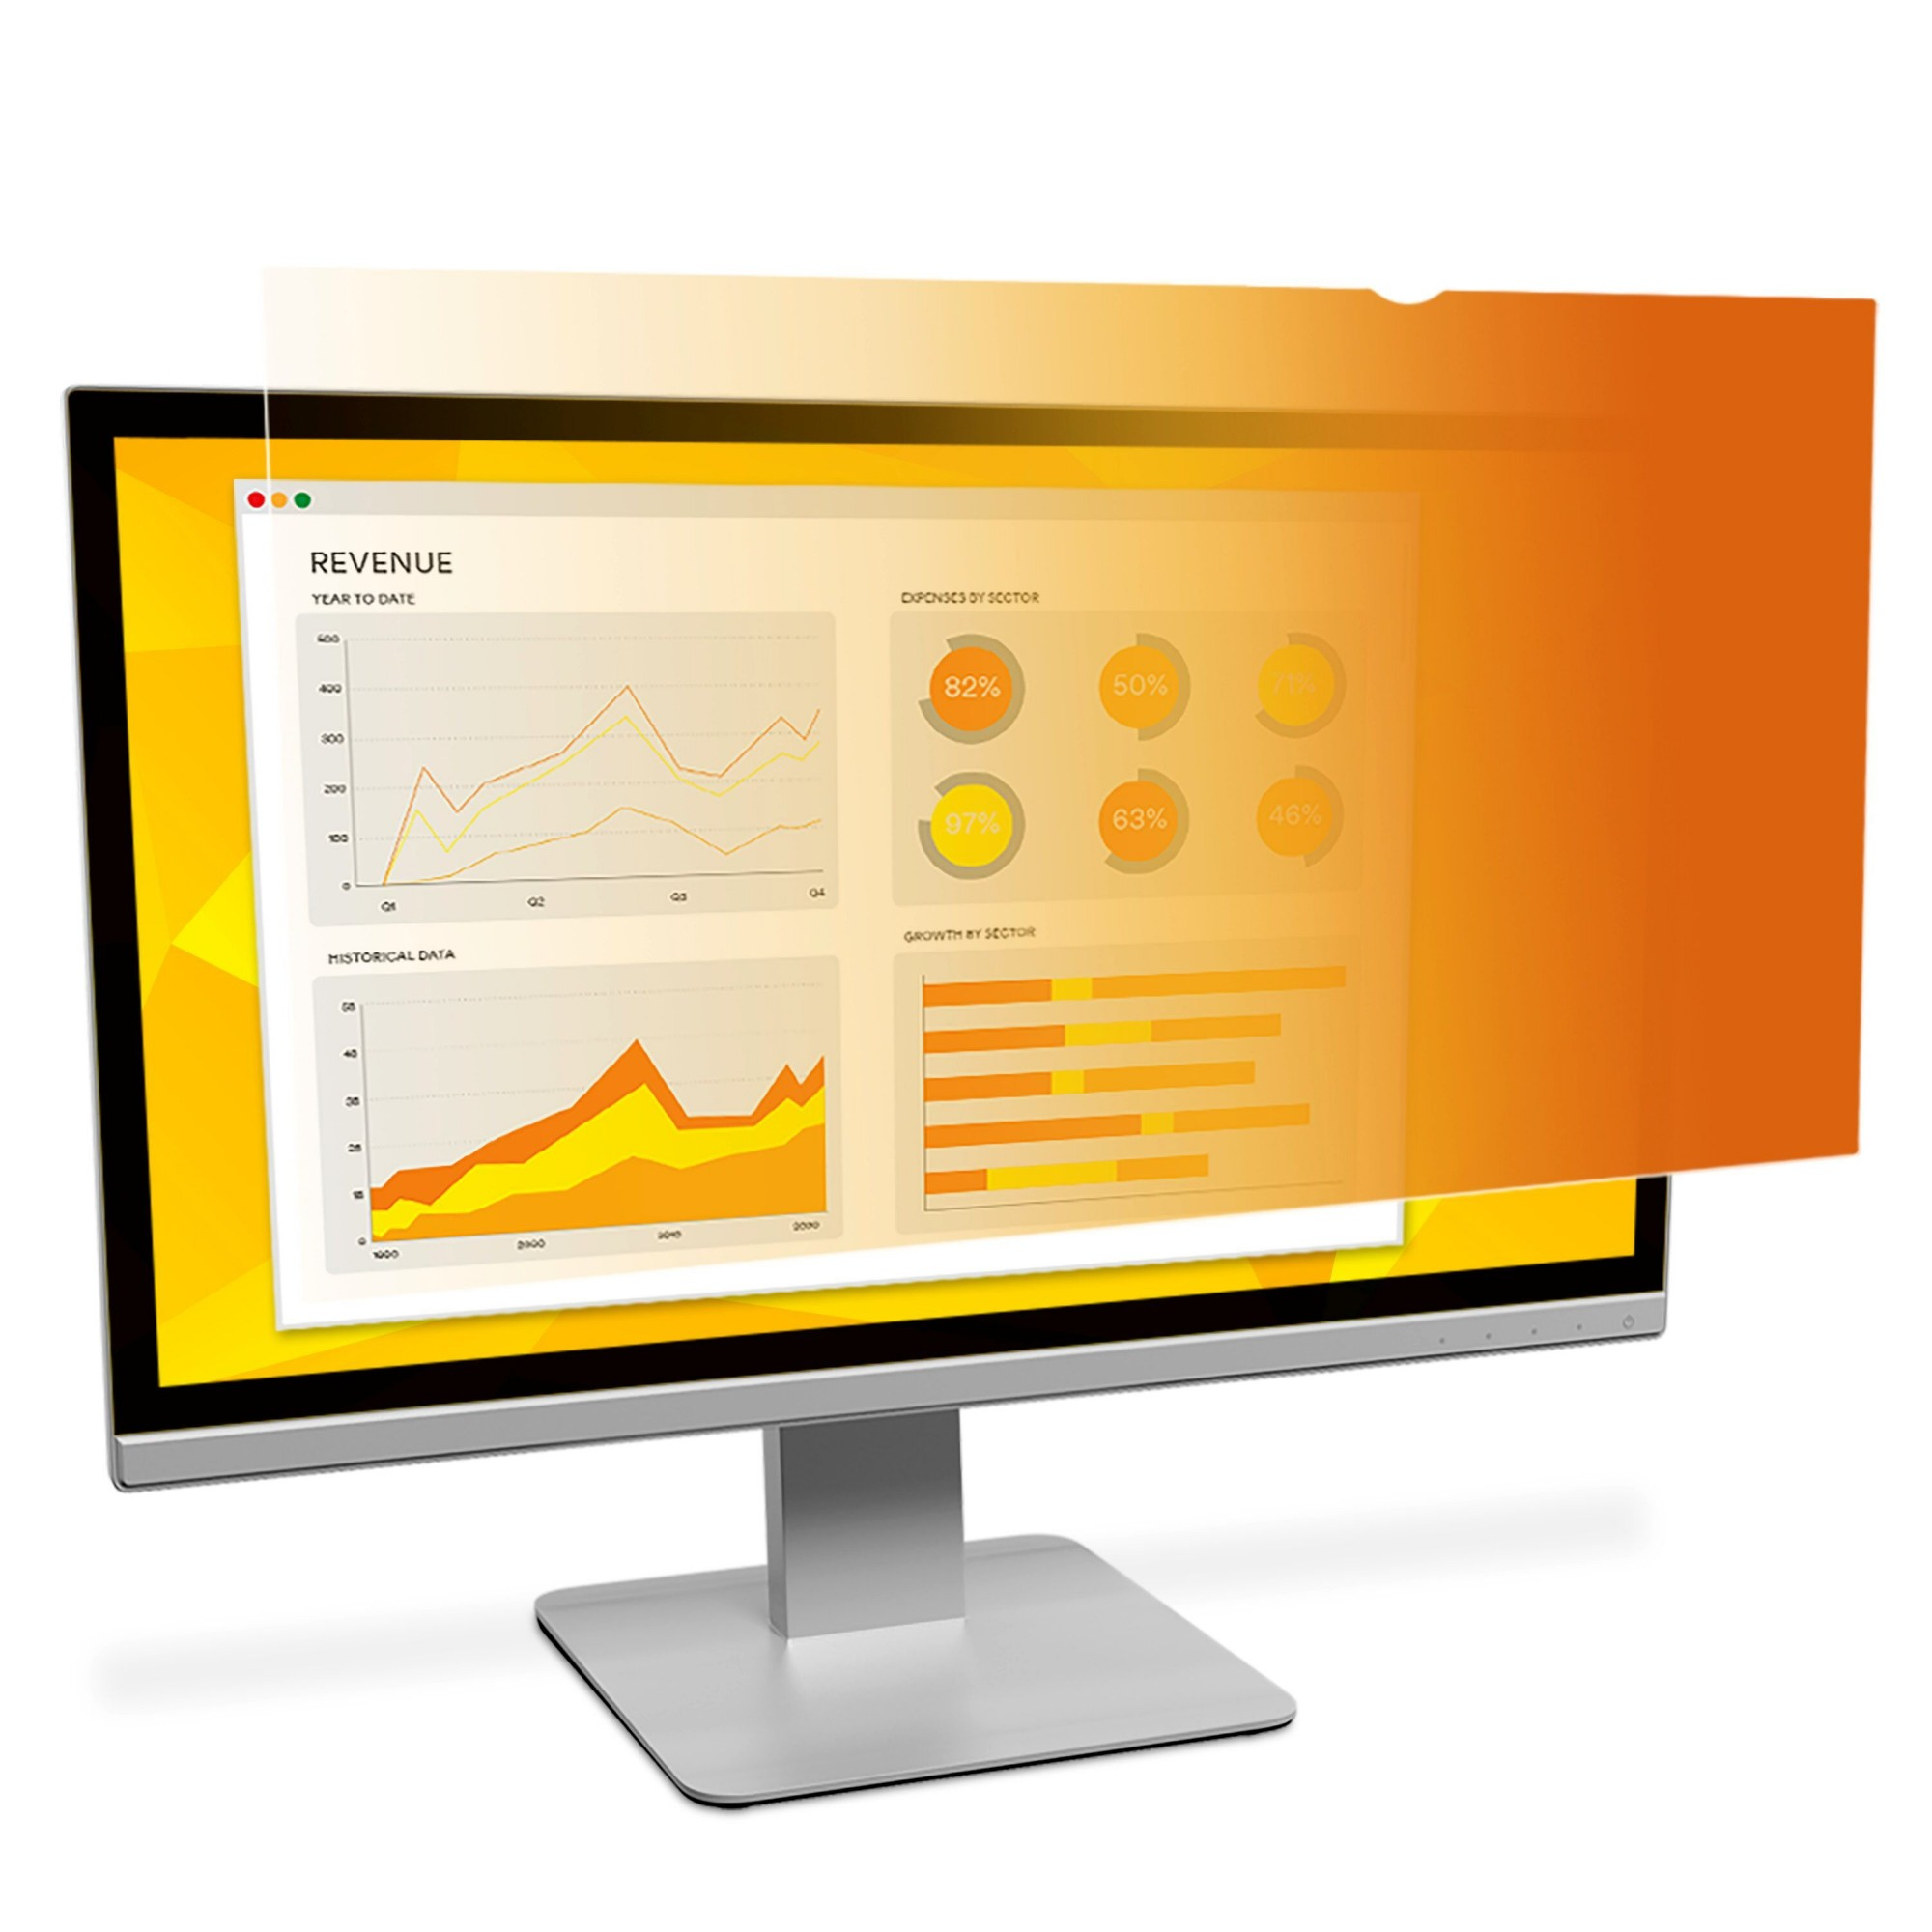 3M Gold Privacy Filter for 23.8″ Widescreen Monitor